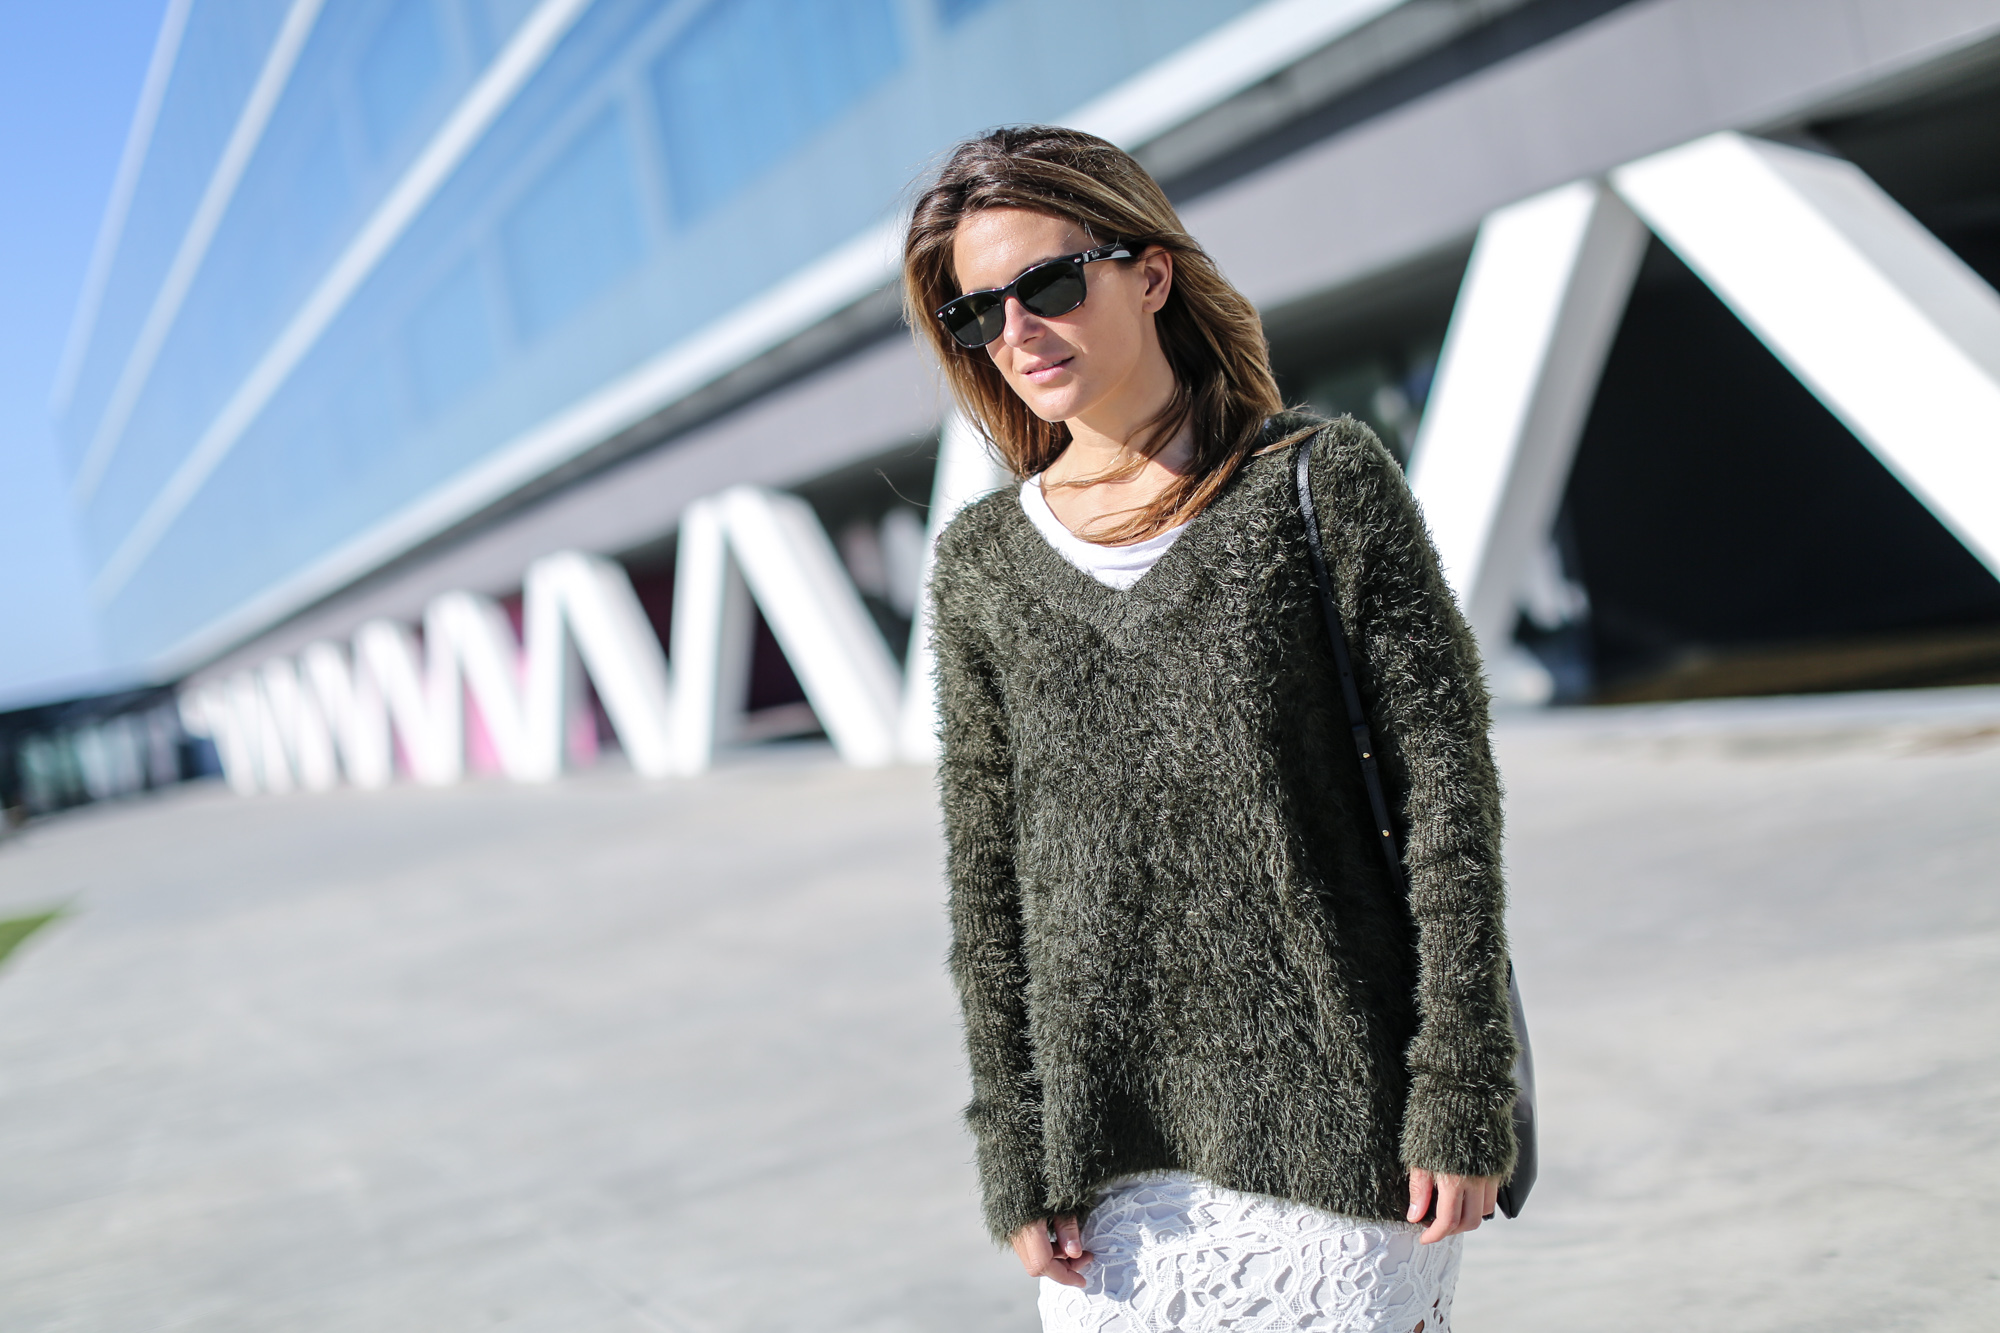 Clochet_streetstyle_chicwish_white_crochet_skirt_green_oversized_knit-5